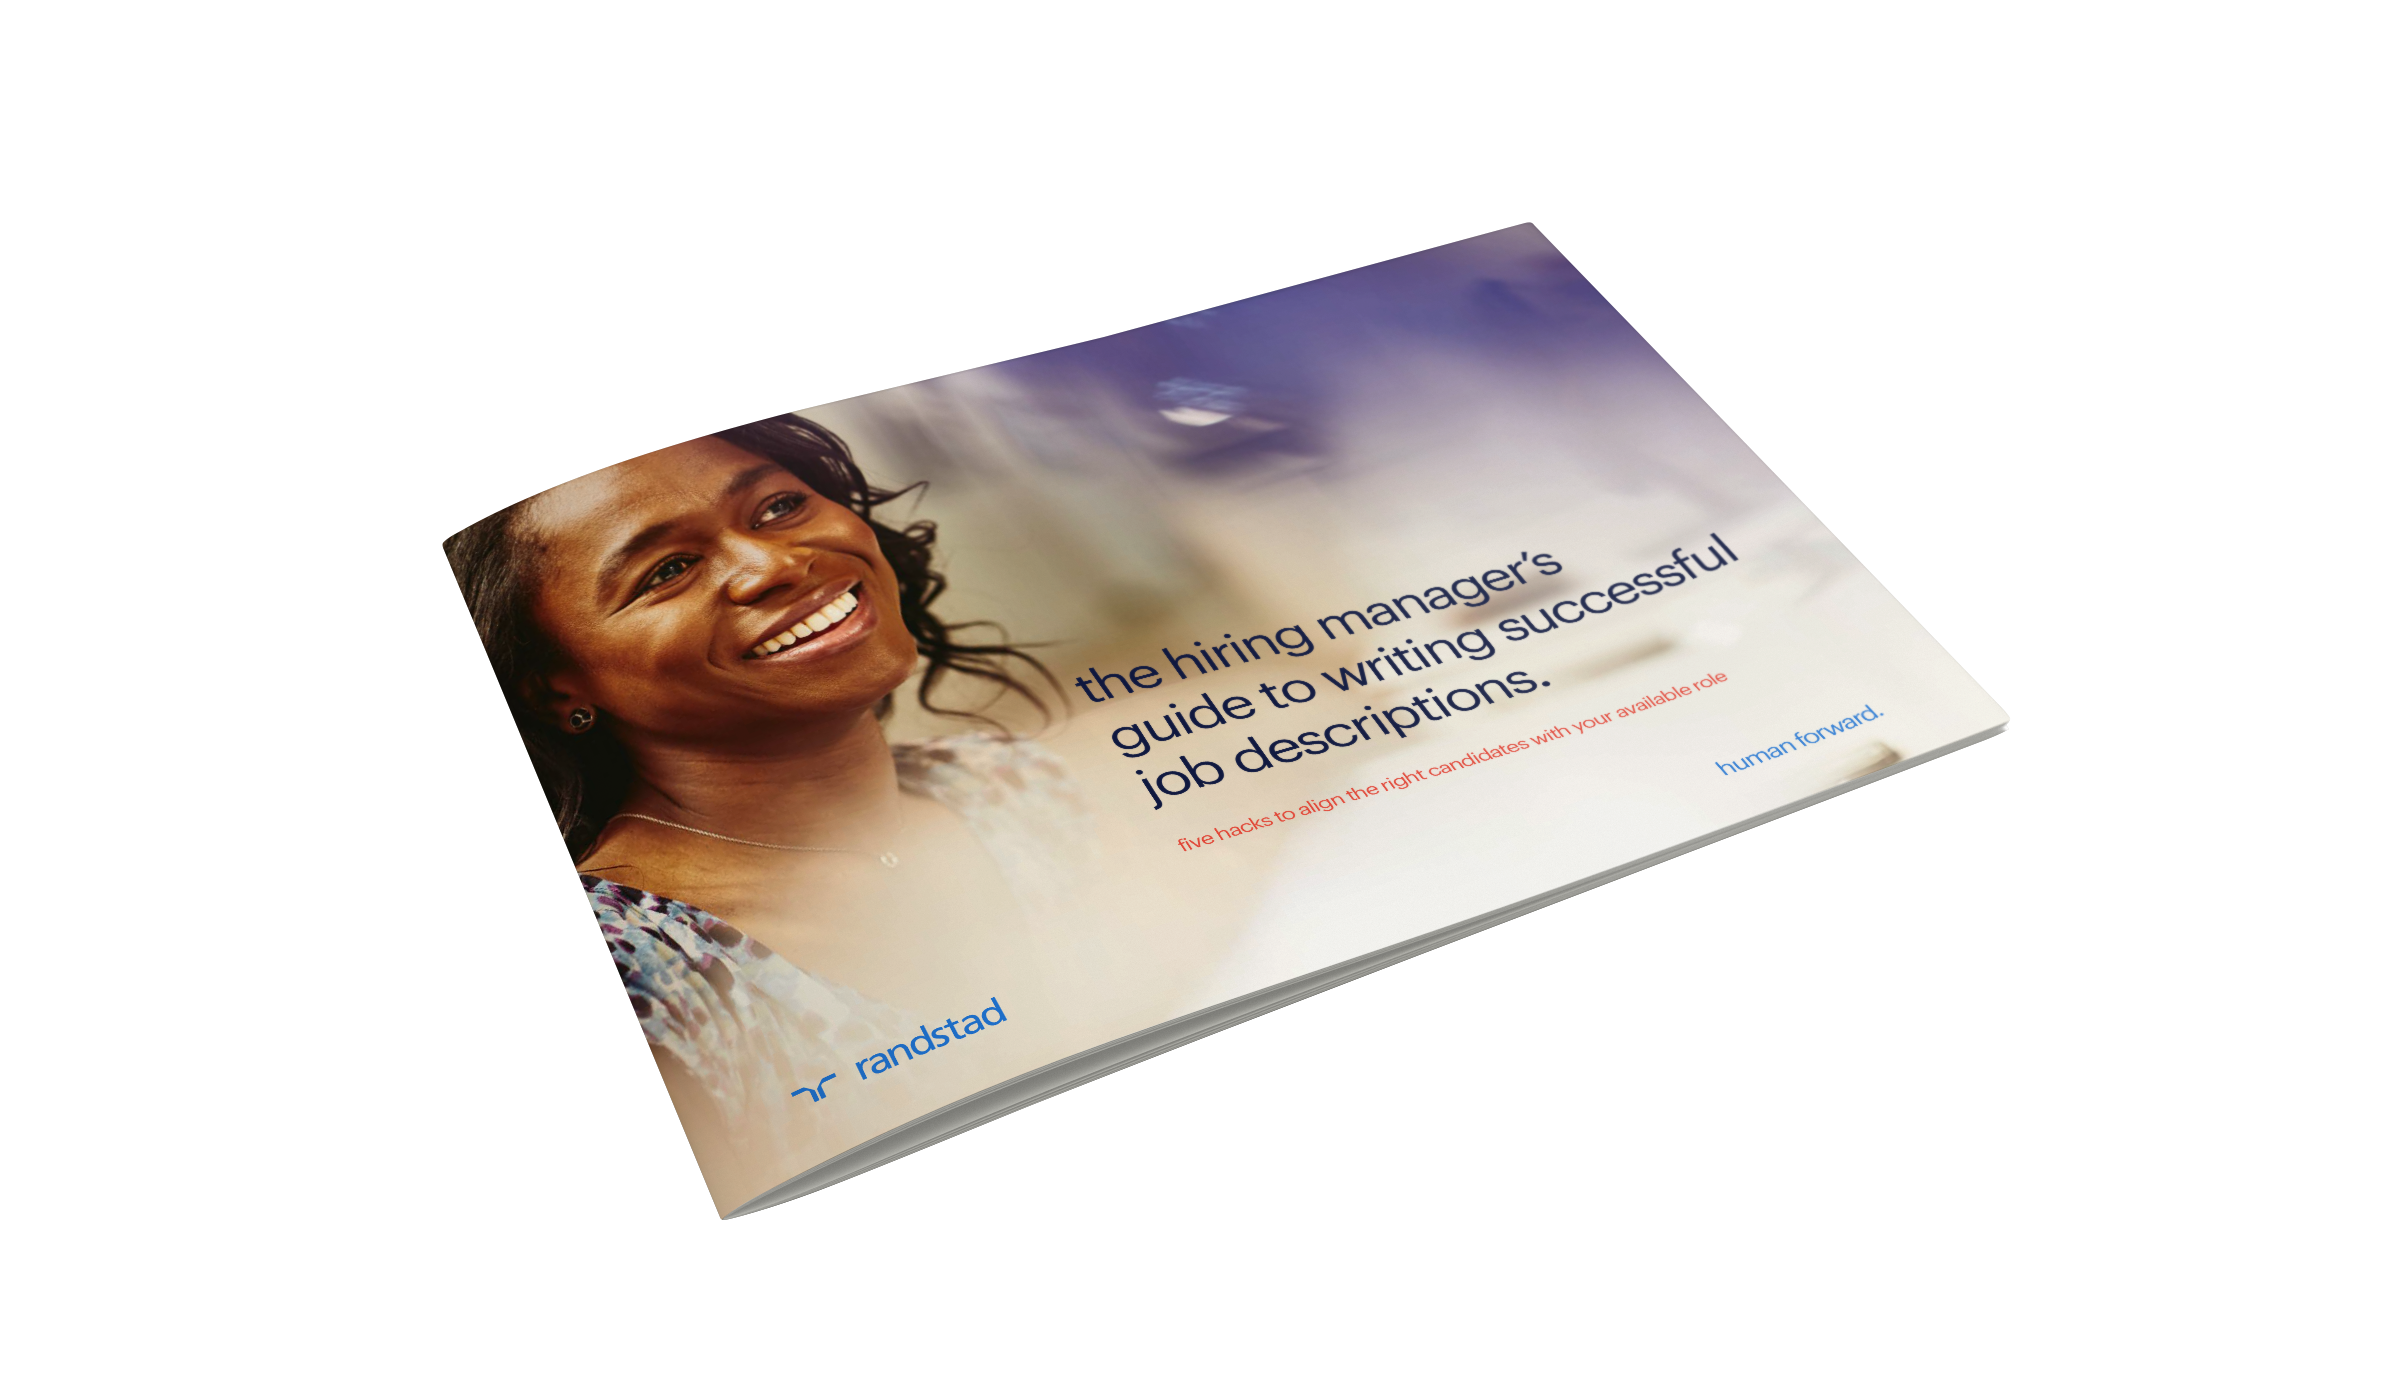 RSH-2391-Mock-ups-whitepaper-The-hiring-managers-guide-to-writing-succesful-job-descriptions